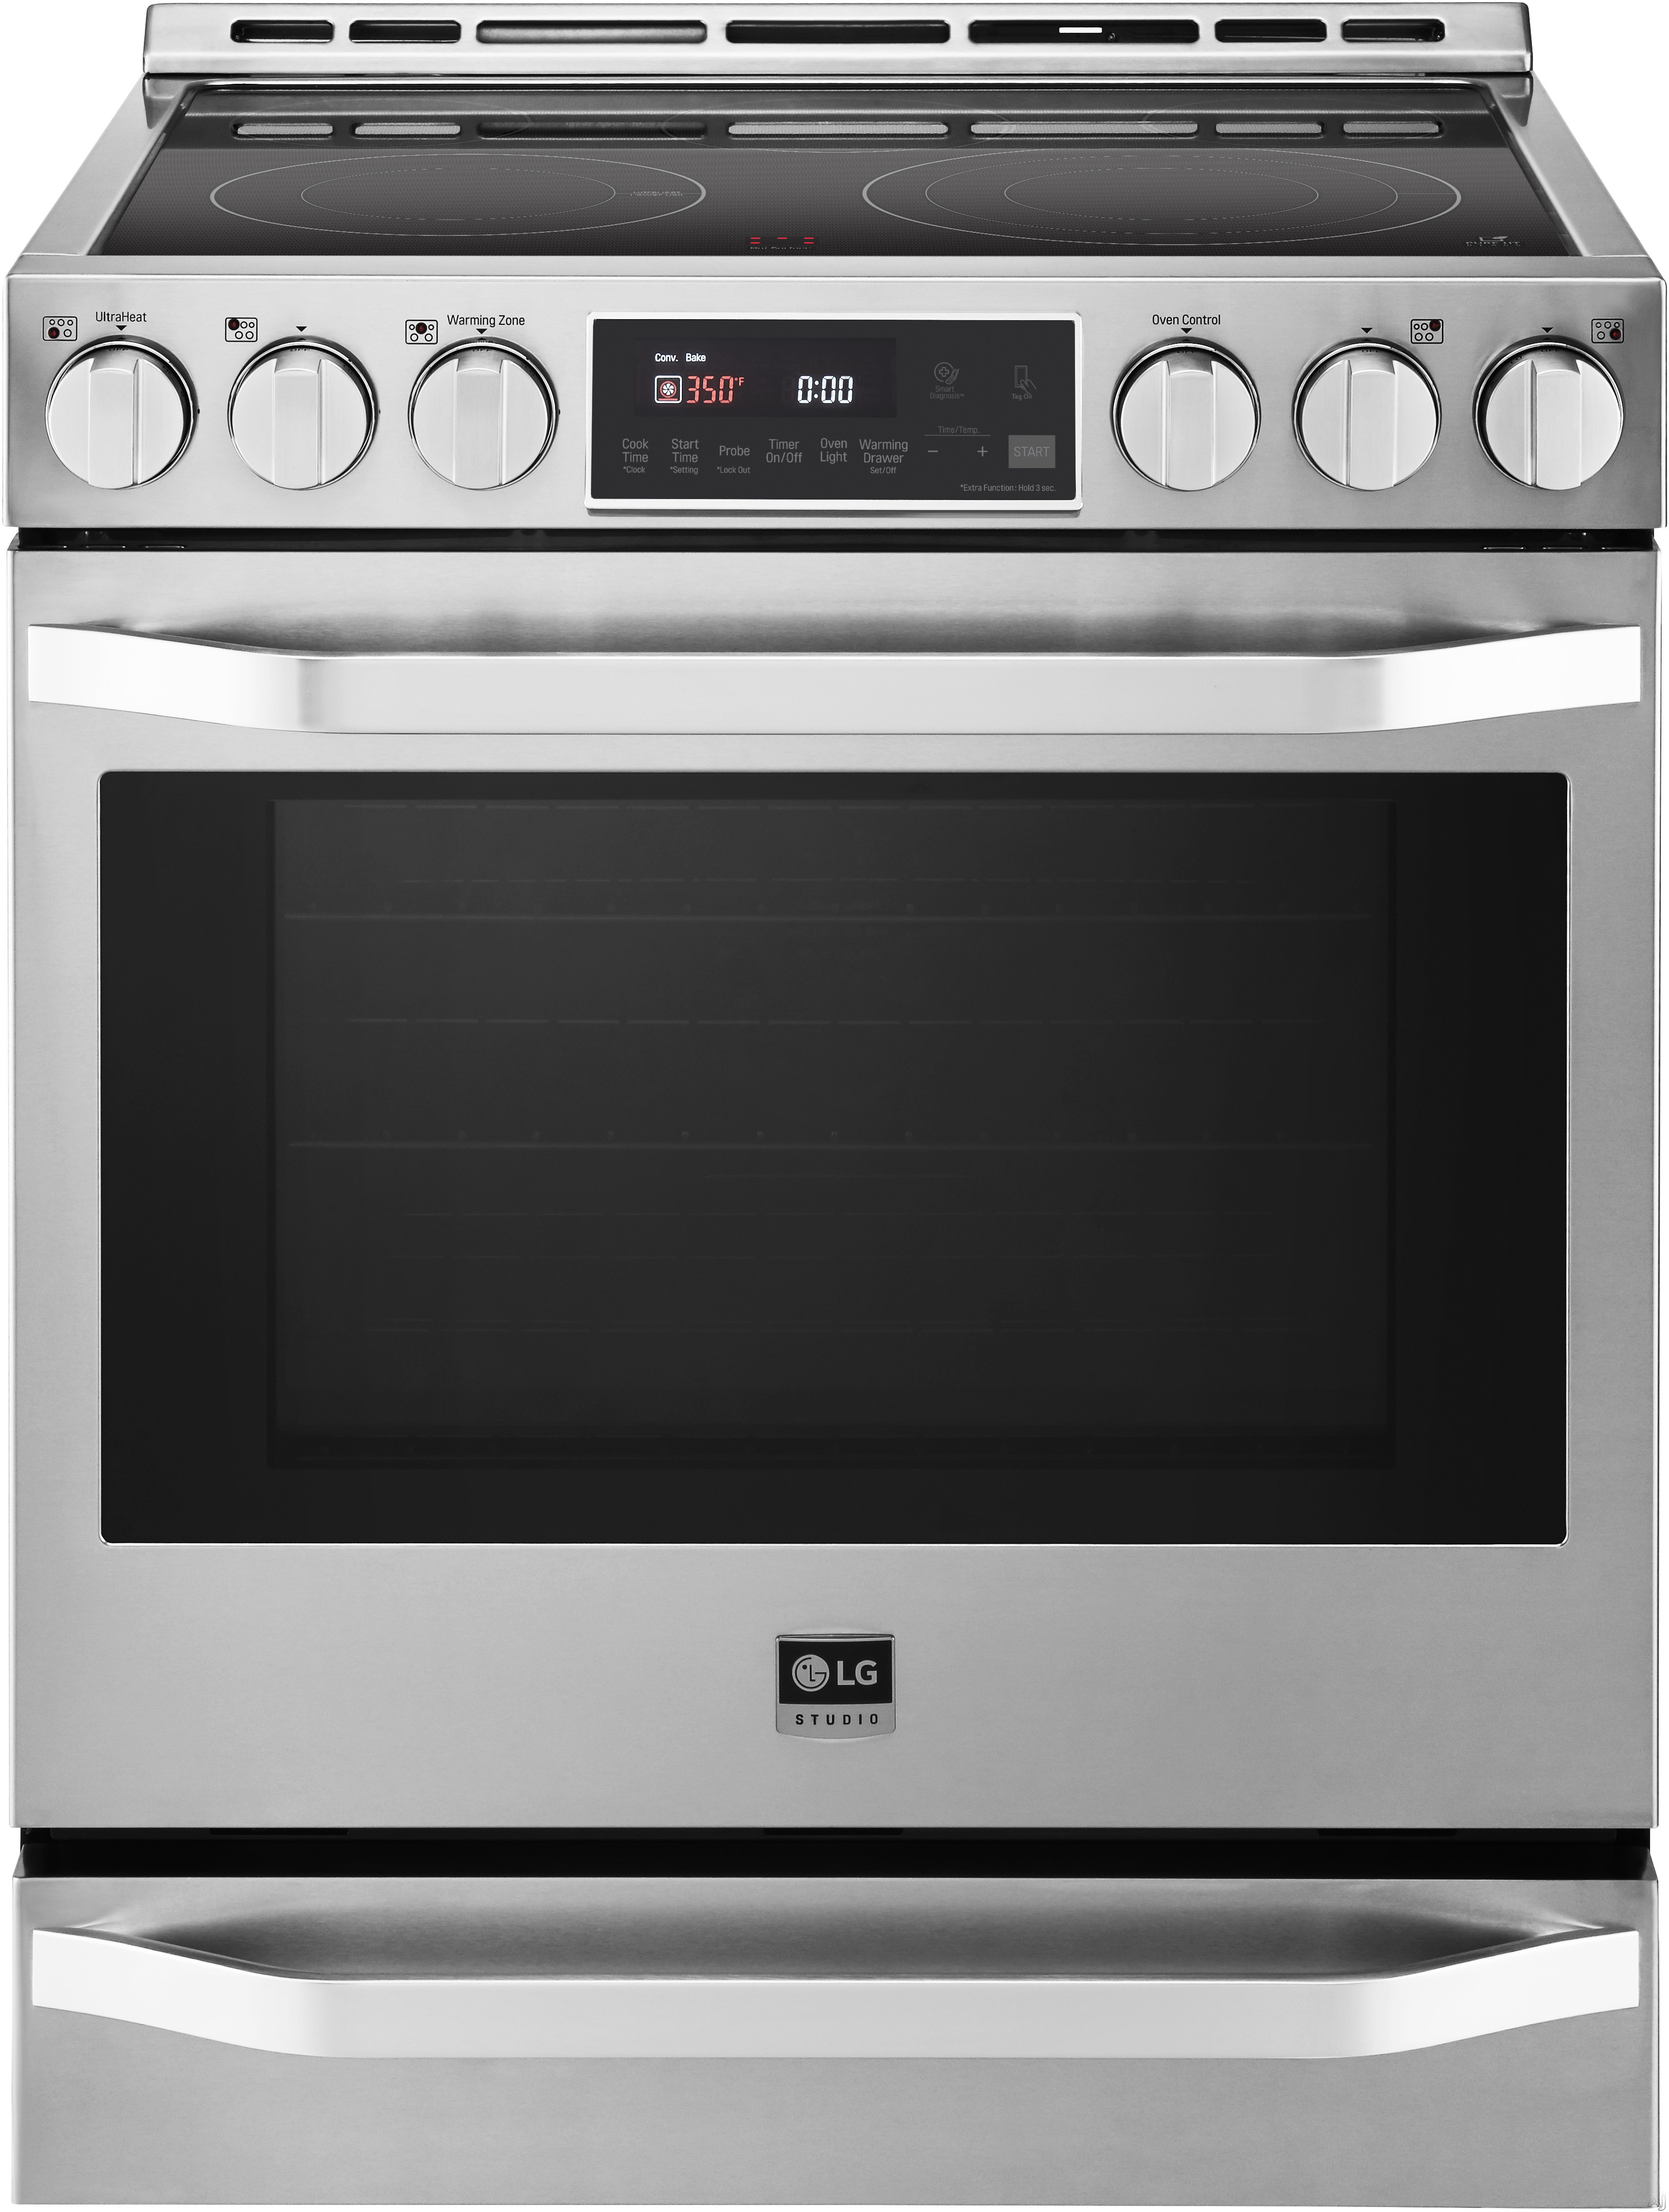 LG Studio LSSE3026ST 30 Inch Slide-In Electric Range with Convection, Infrared Heating, EasyClean, Delay Start, 6.3 cu. ft. Capacity, 5 Smoothtop Elements, Hot Surface LED Indicator and Warming Drawer